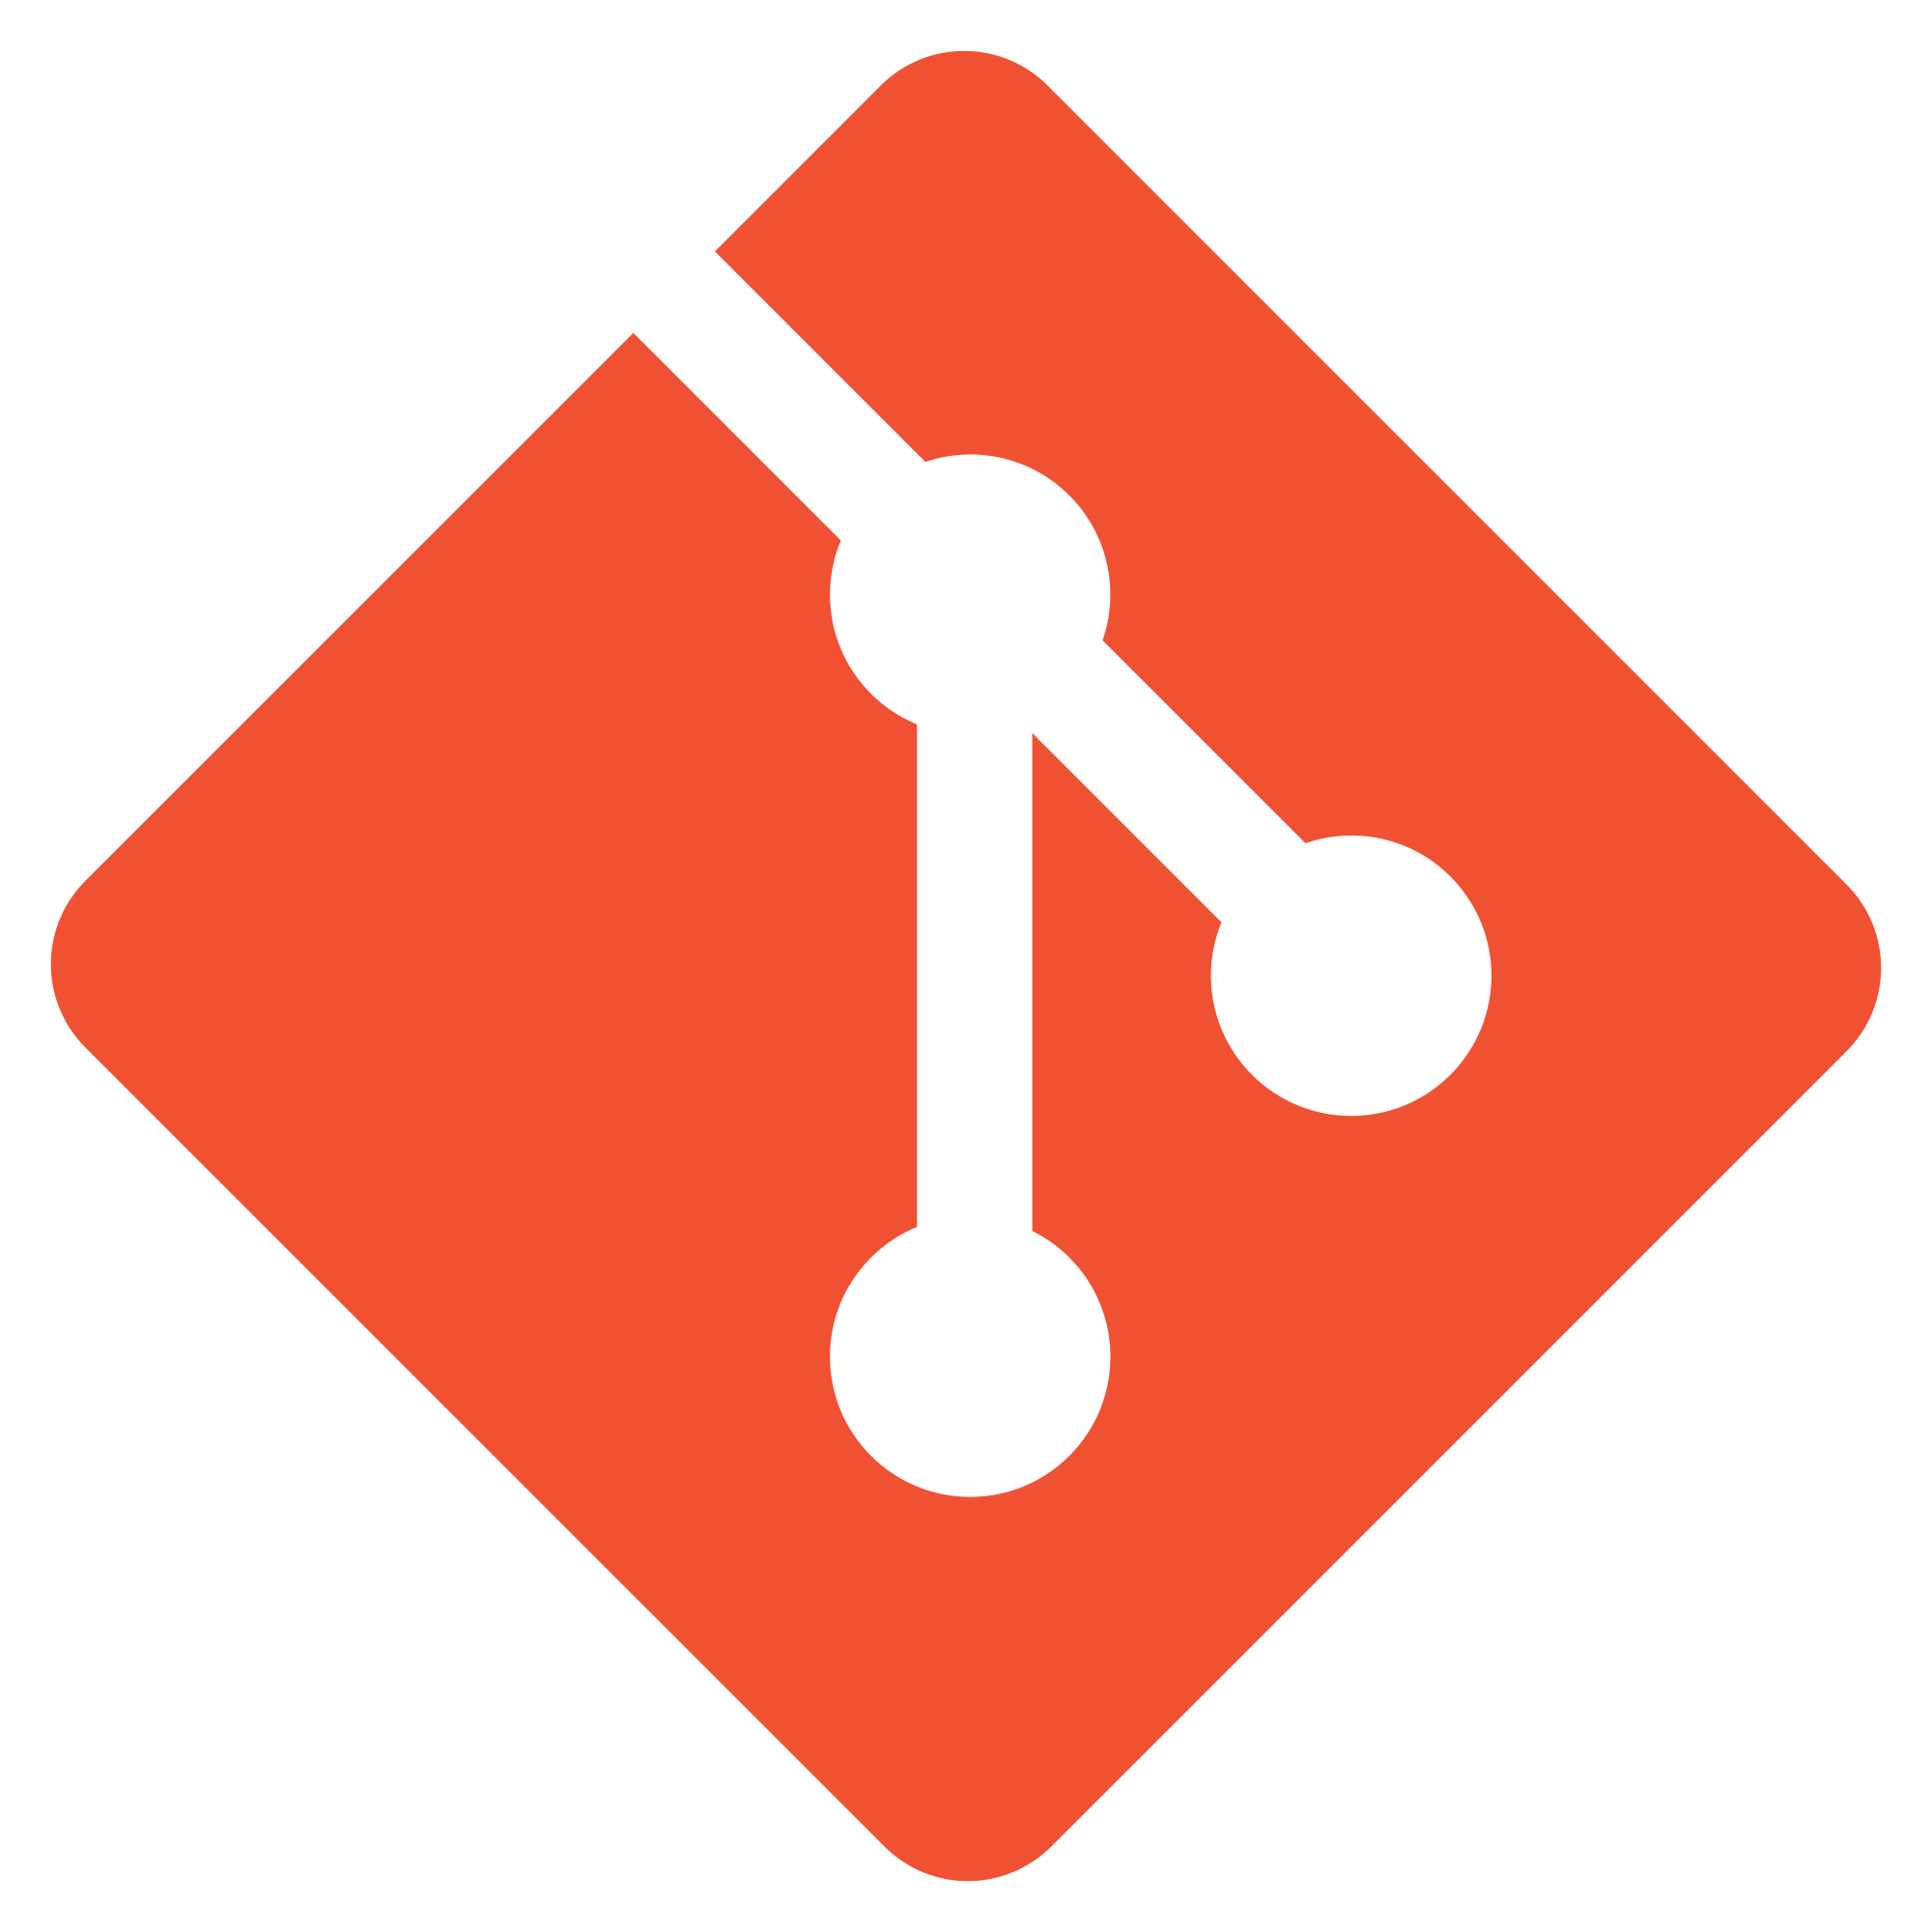 Svg preview icon. File git wikimedia commons